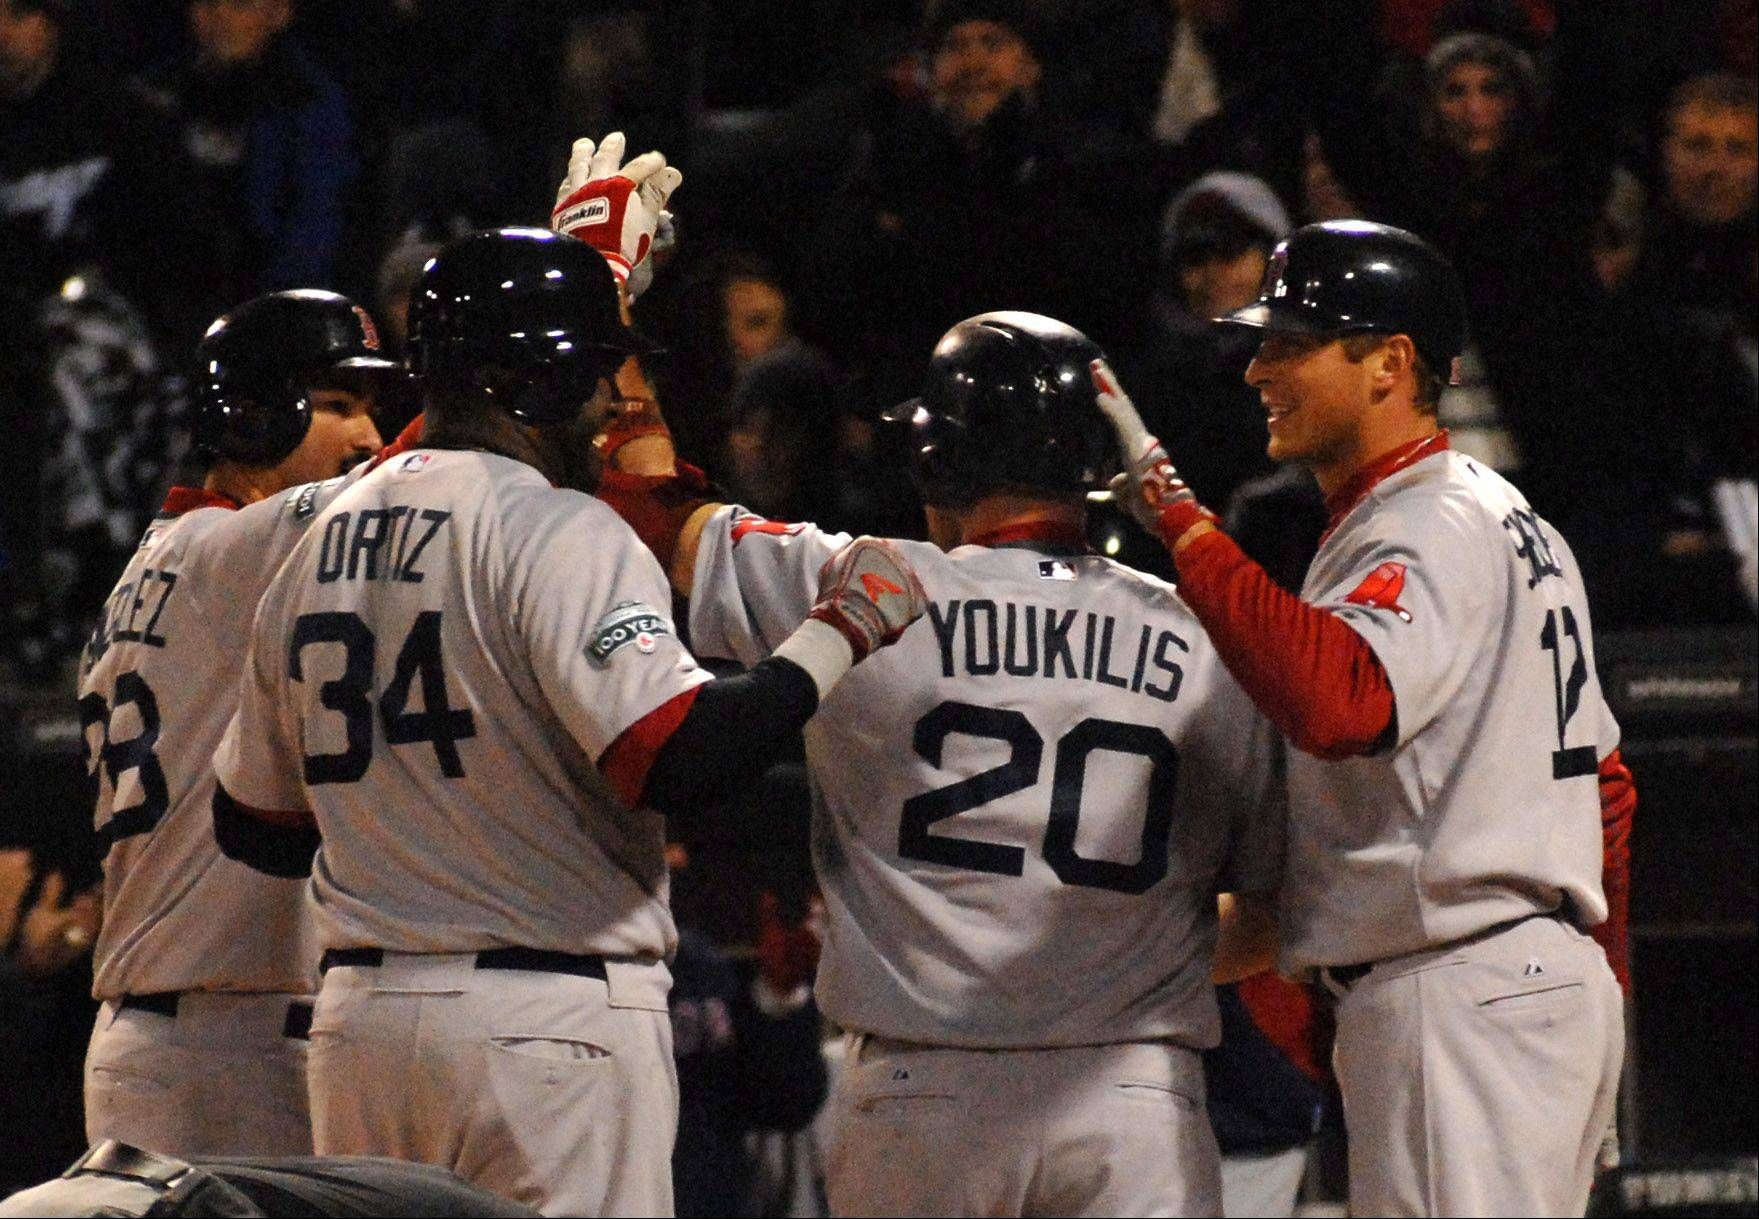 Red Sox teammates meet Kevin Youkilis at the plate after his third-inning grand slam.